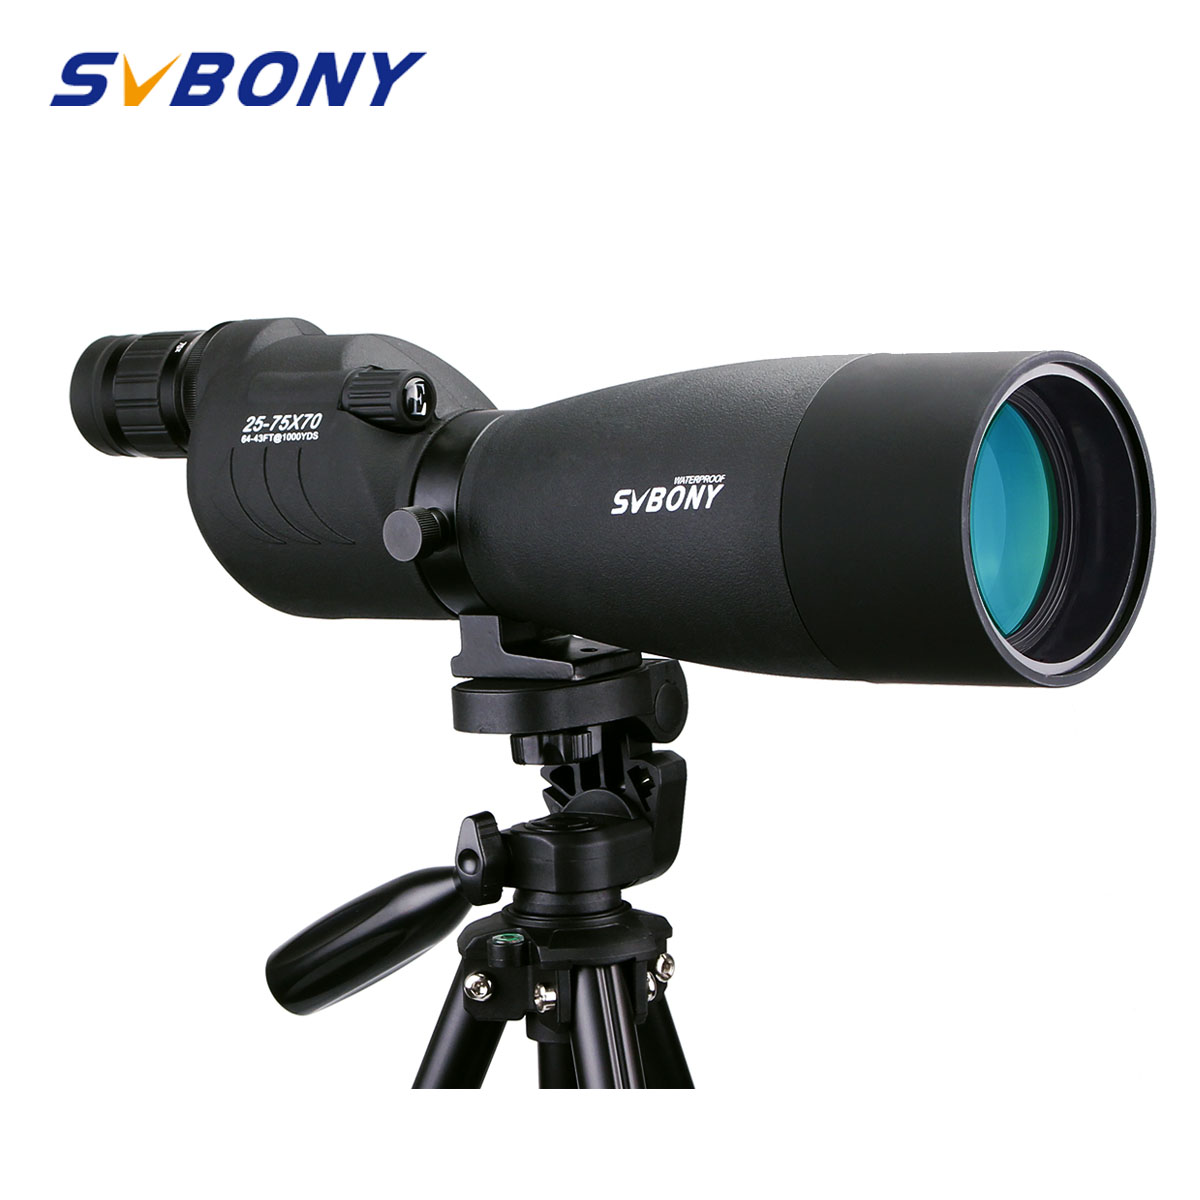 SVBONY SV17 Spotting Scope 25-75x70mm Zoom Waterproof Straight 180 De For Target Hunting Archery Telescope Black + Tripod F9326A